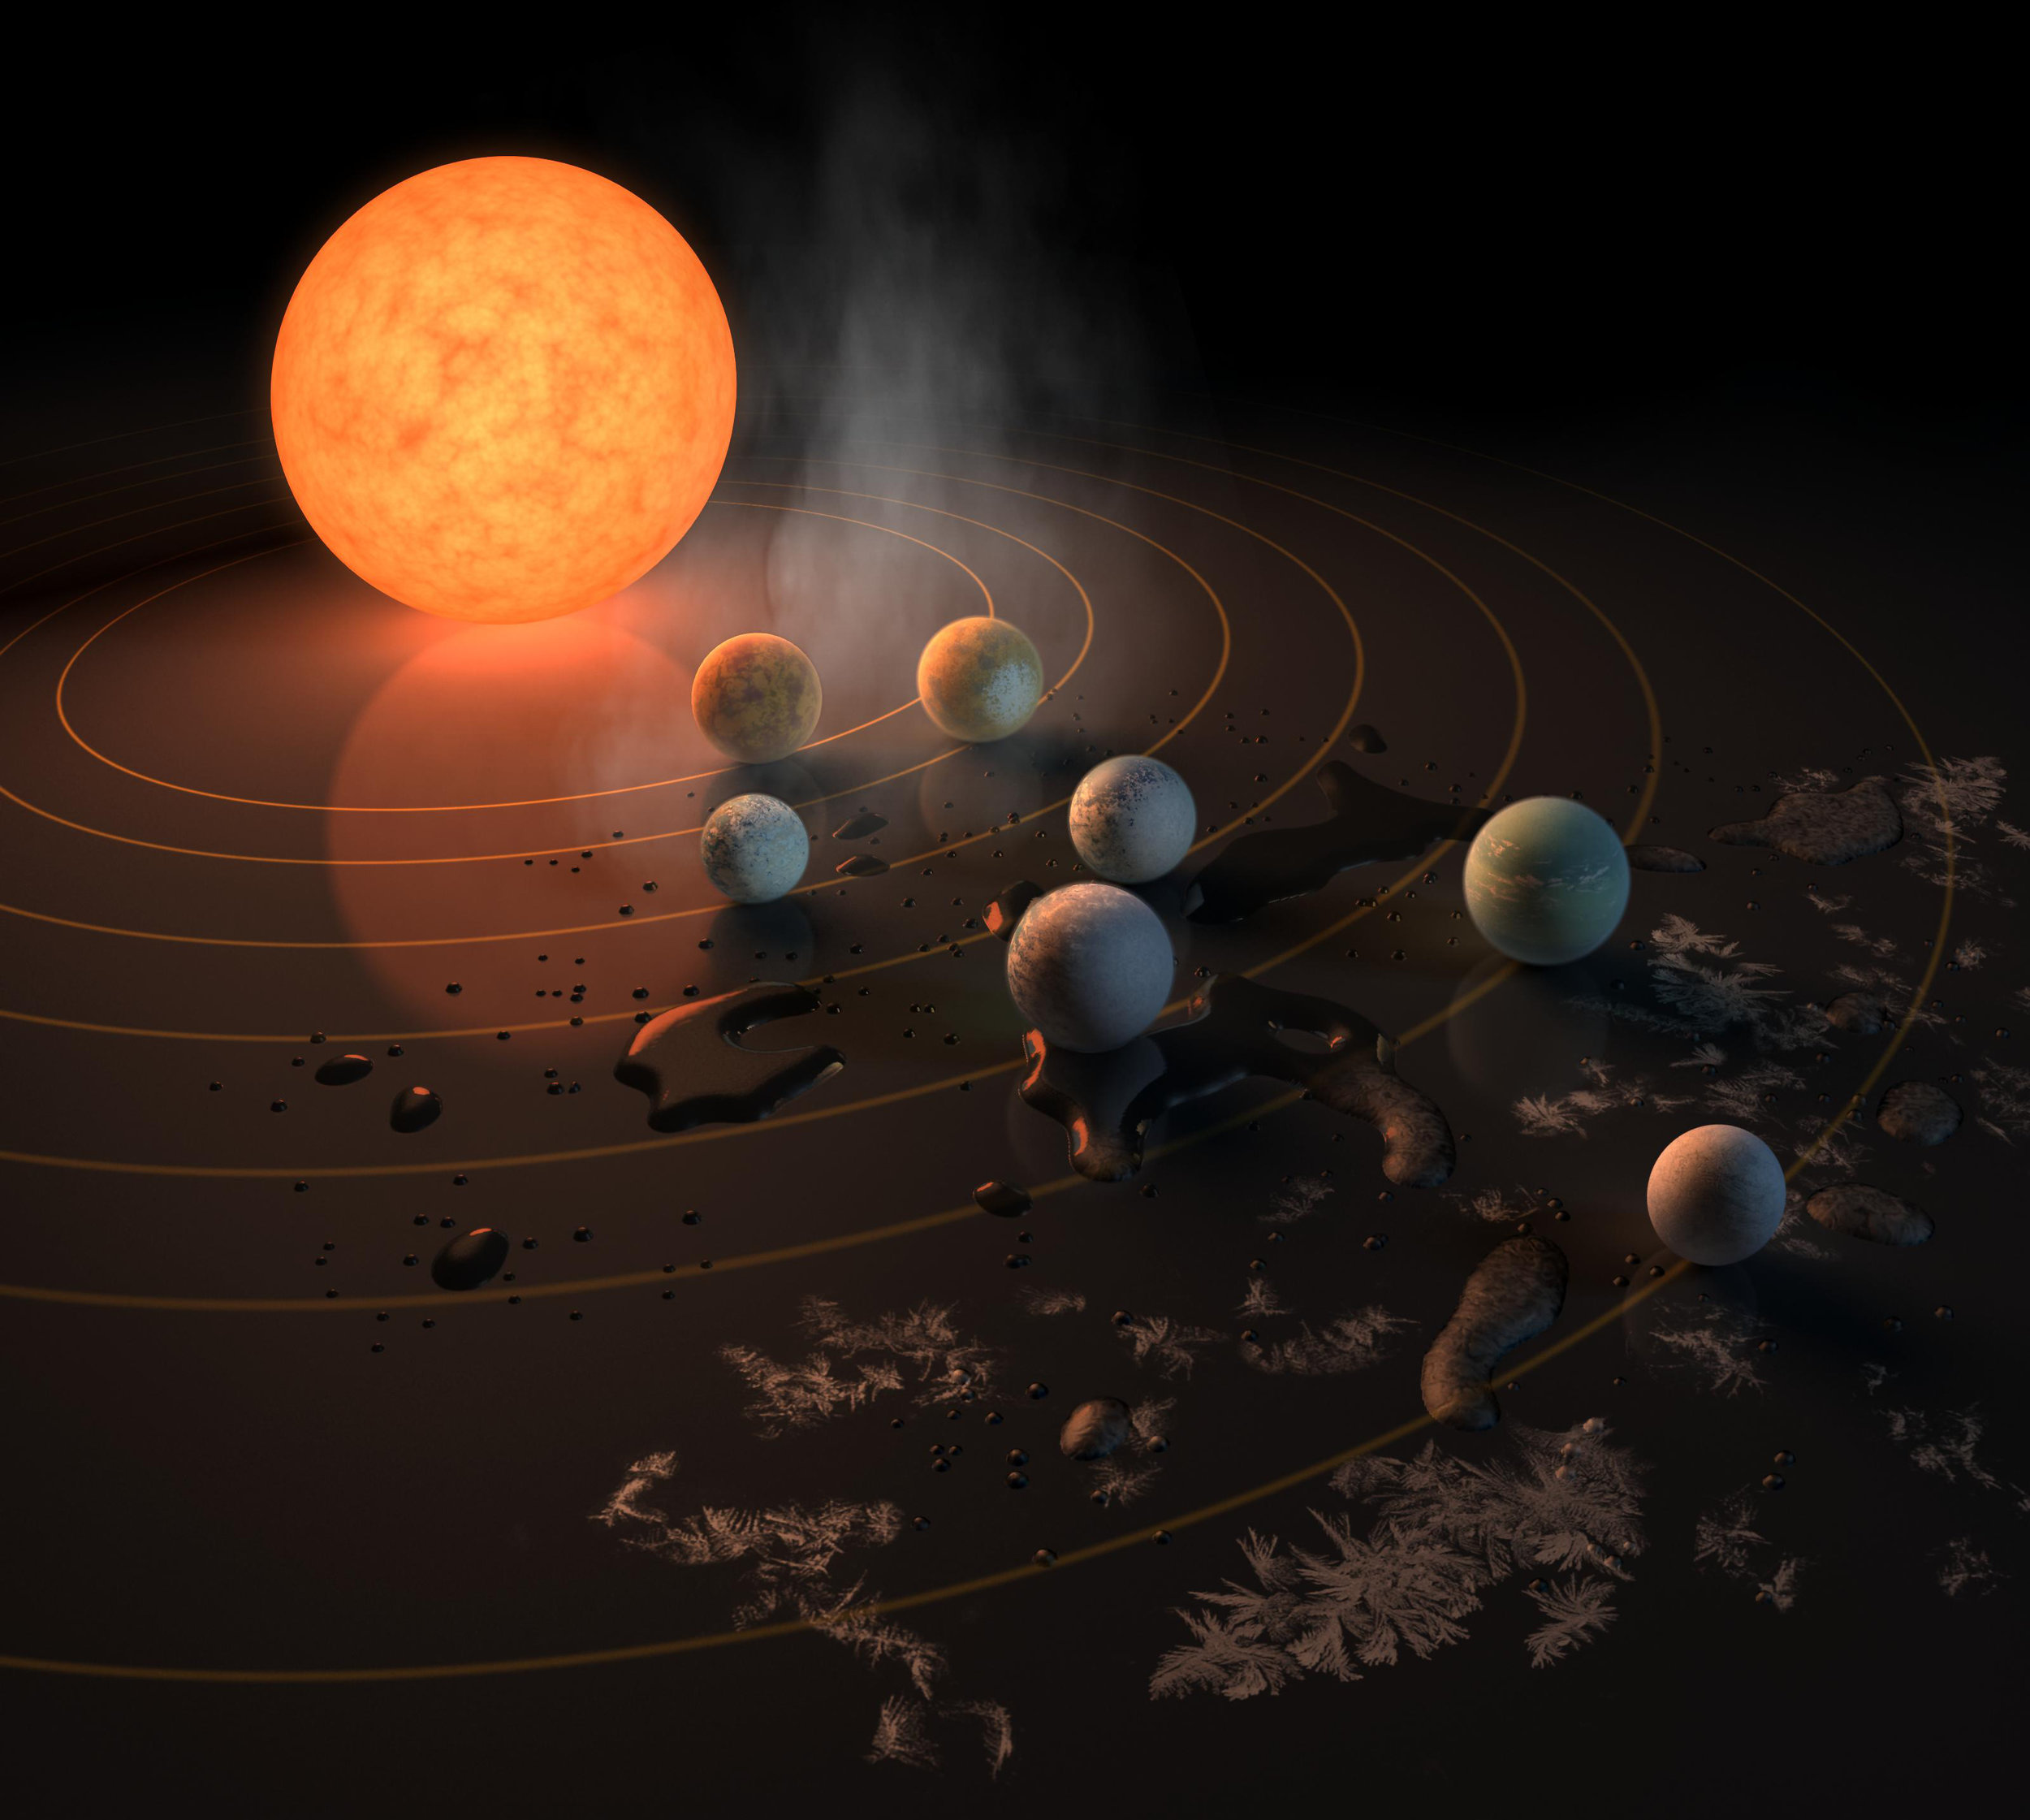 This artist's concept appeared on the Feb. 23, 2017 cover of the journal Nature announcing that the TRAPPIST-1 star, an ultra-cool dwarf, has seven Earth-size planets orbiting it. Any of these planets could have liquid water on them. Planets that are farther from the star are more likely to have significant amounts of ice, especially on the side that faces away from the star. - Image Credits: NASA-JPL/Caltech